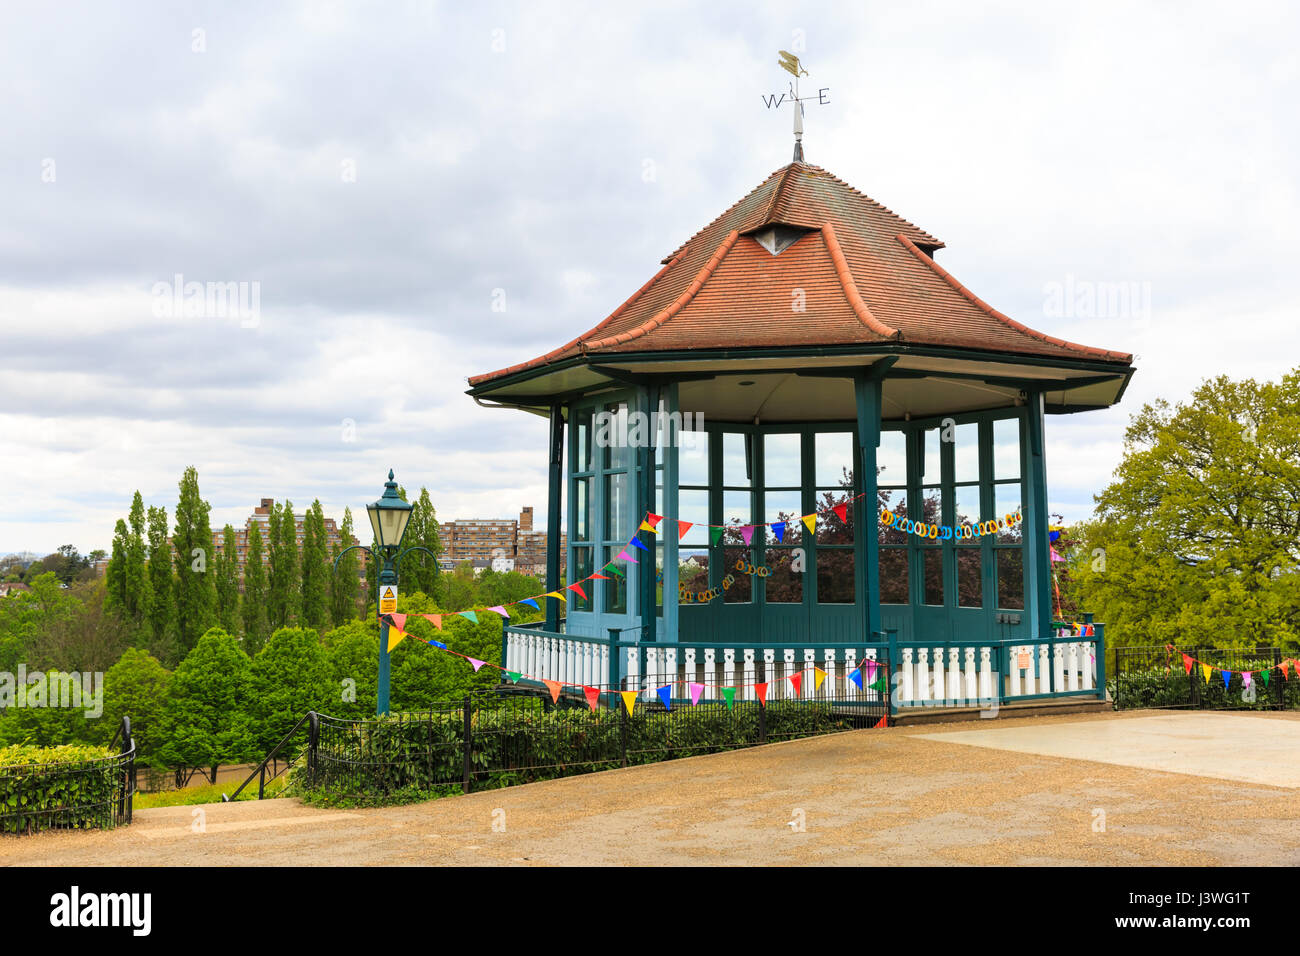 The restored Bandstand, Horniman Gardens, Forest Hill, London Stock Photo